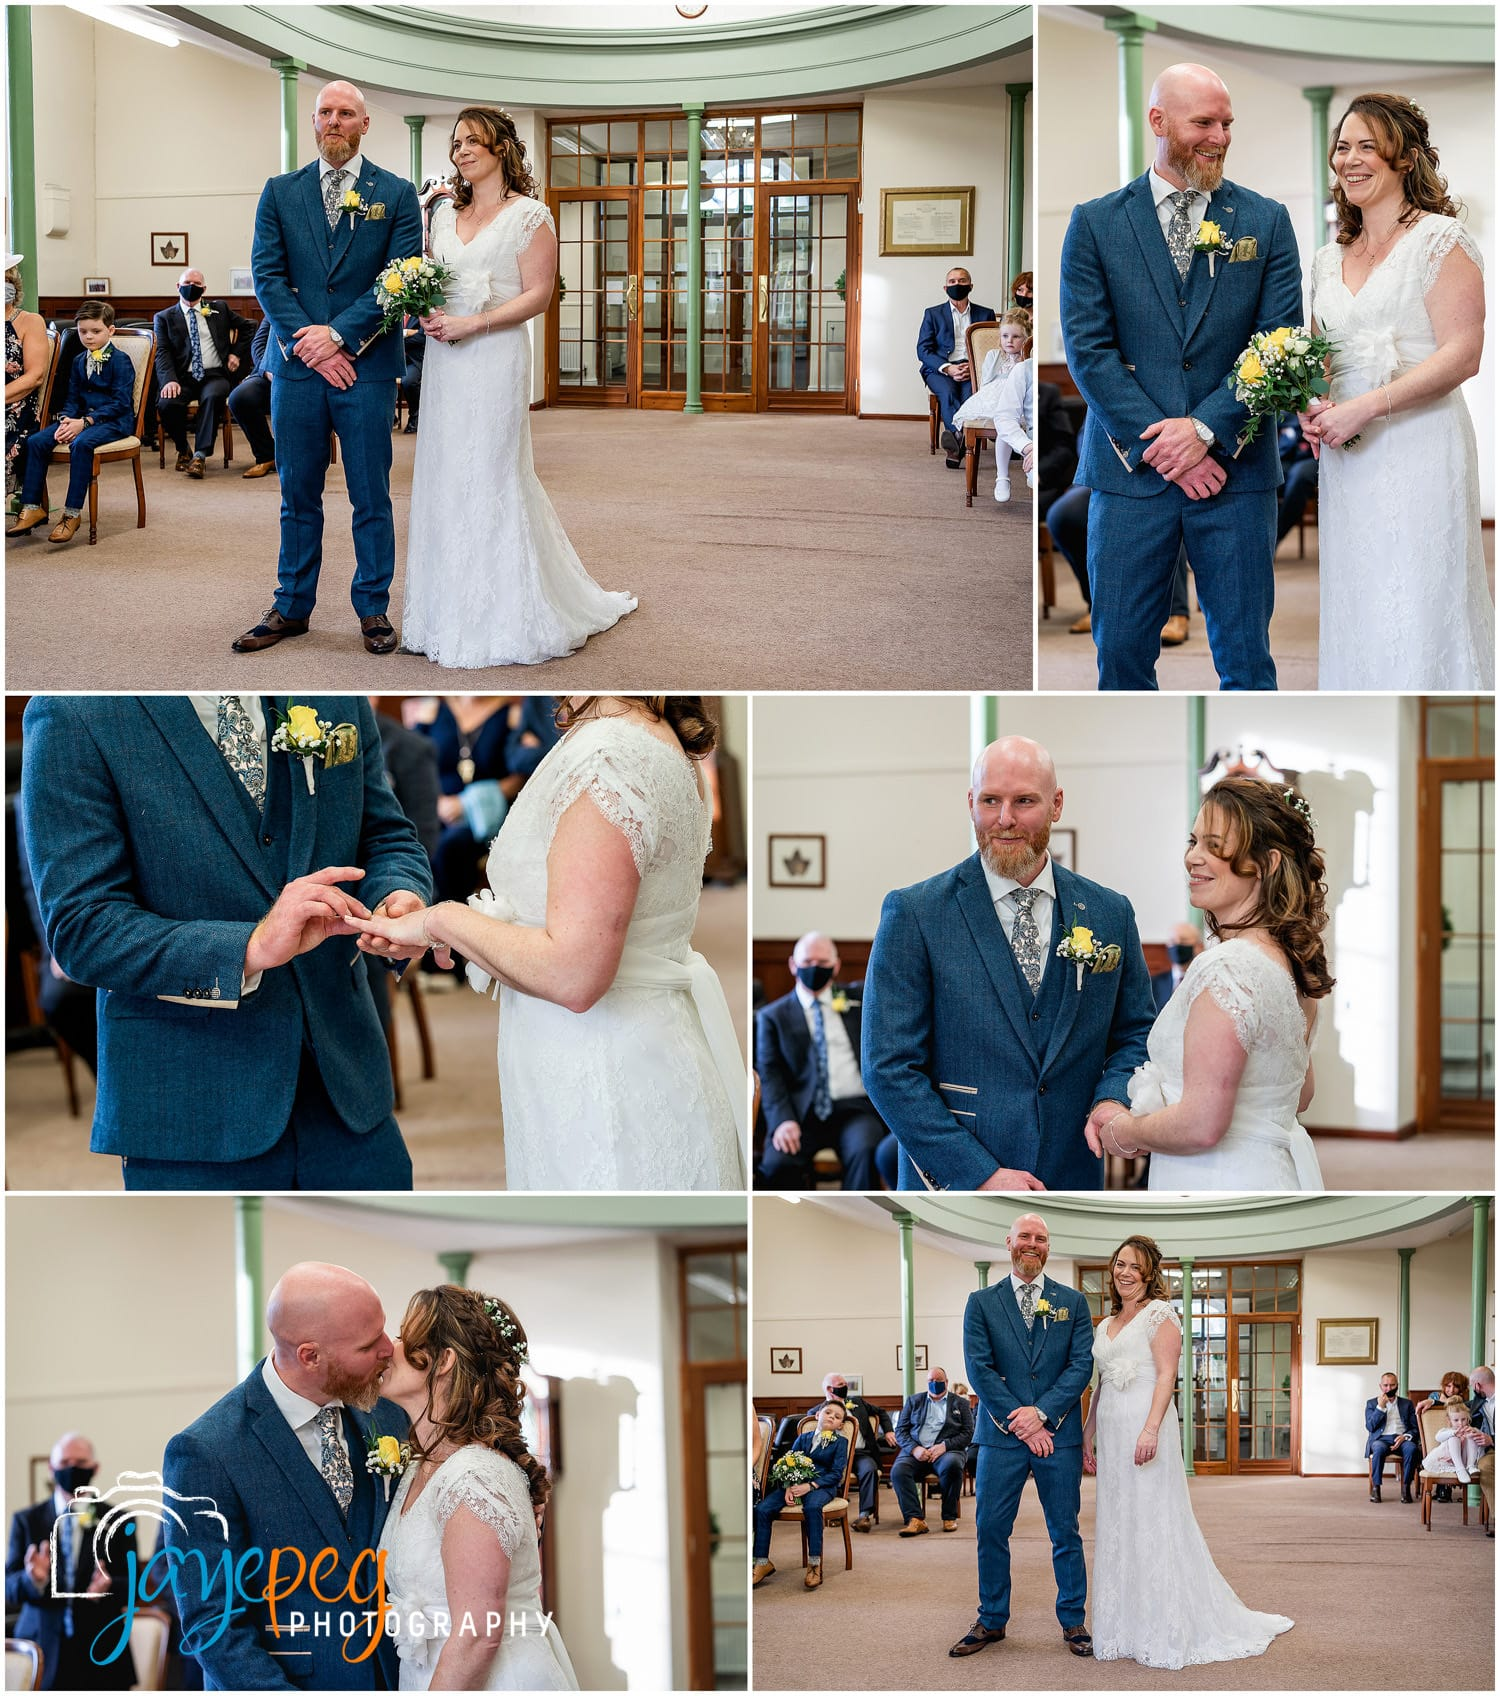 photographs of a wedding ceremony in cockermouth town hall